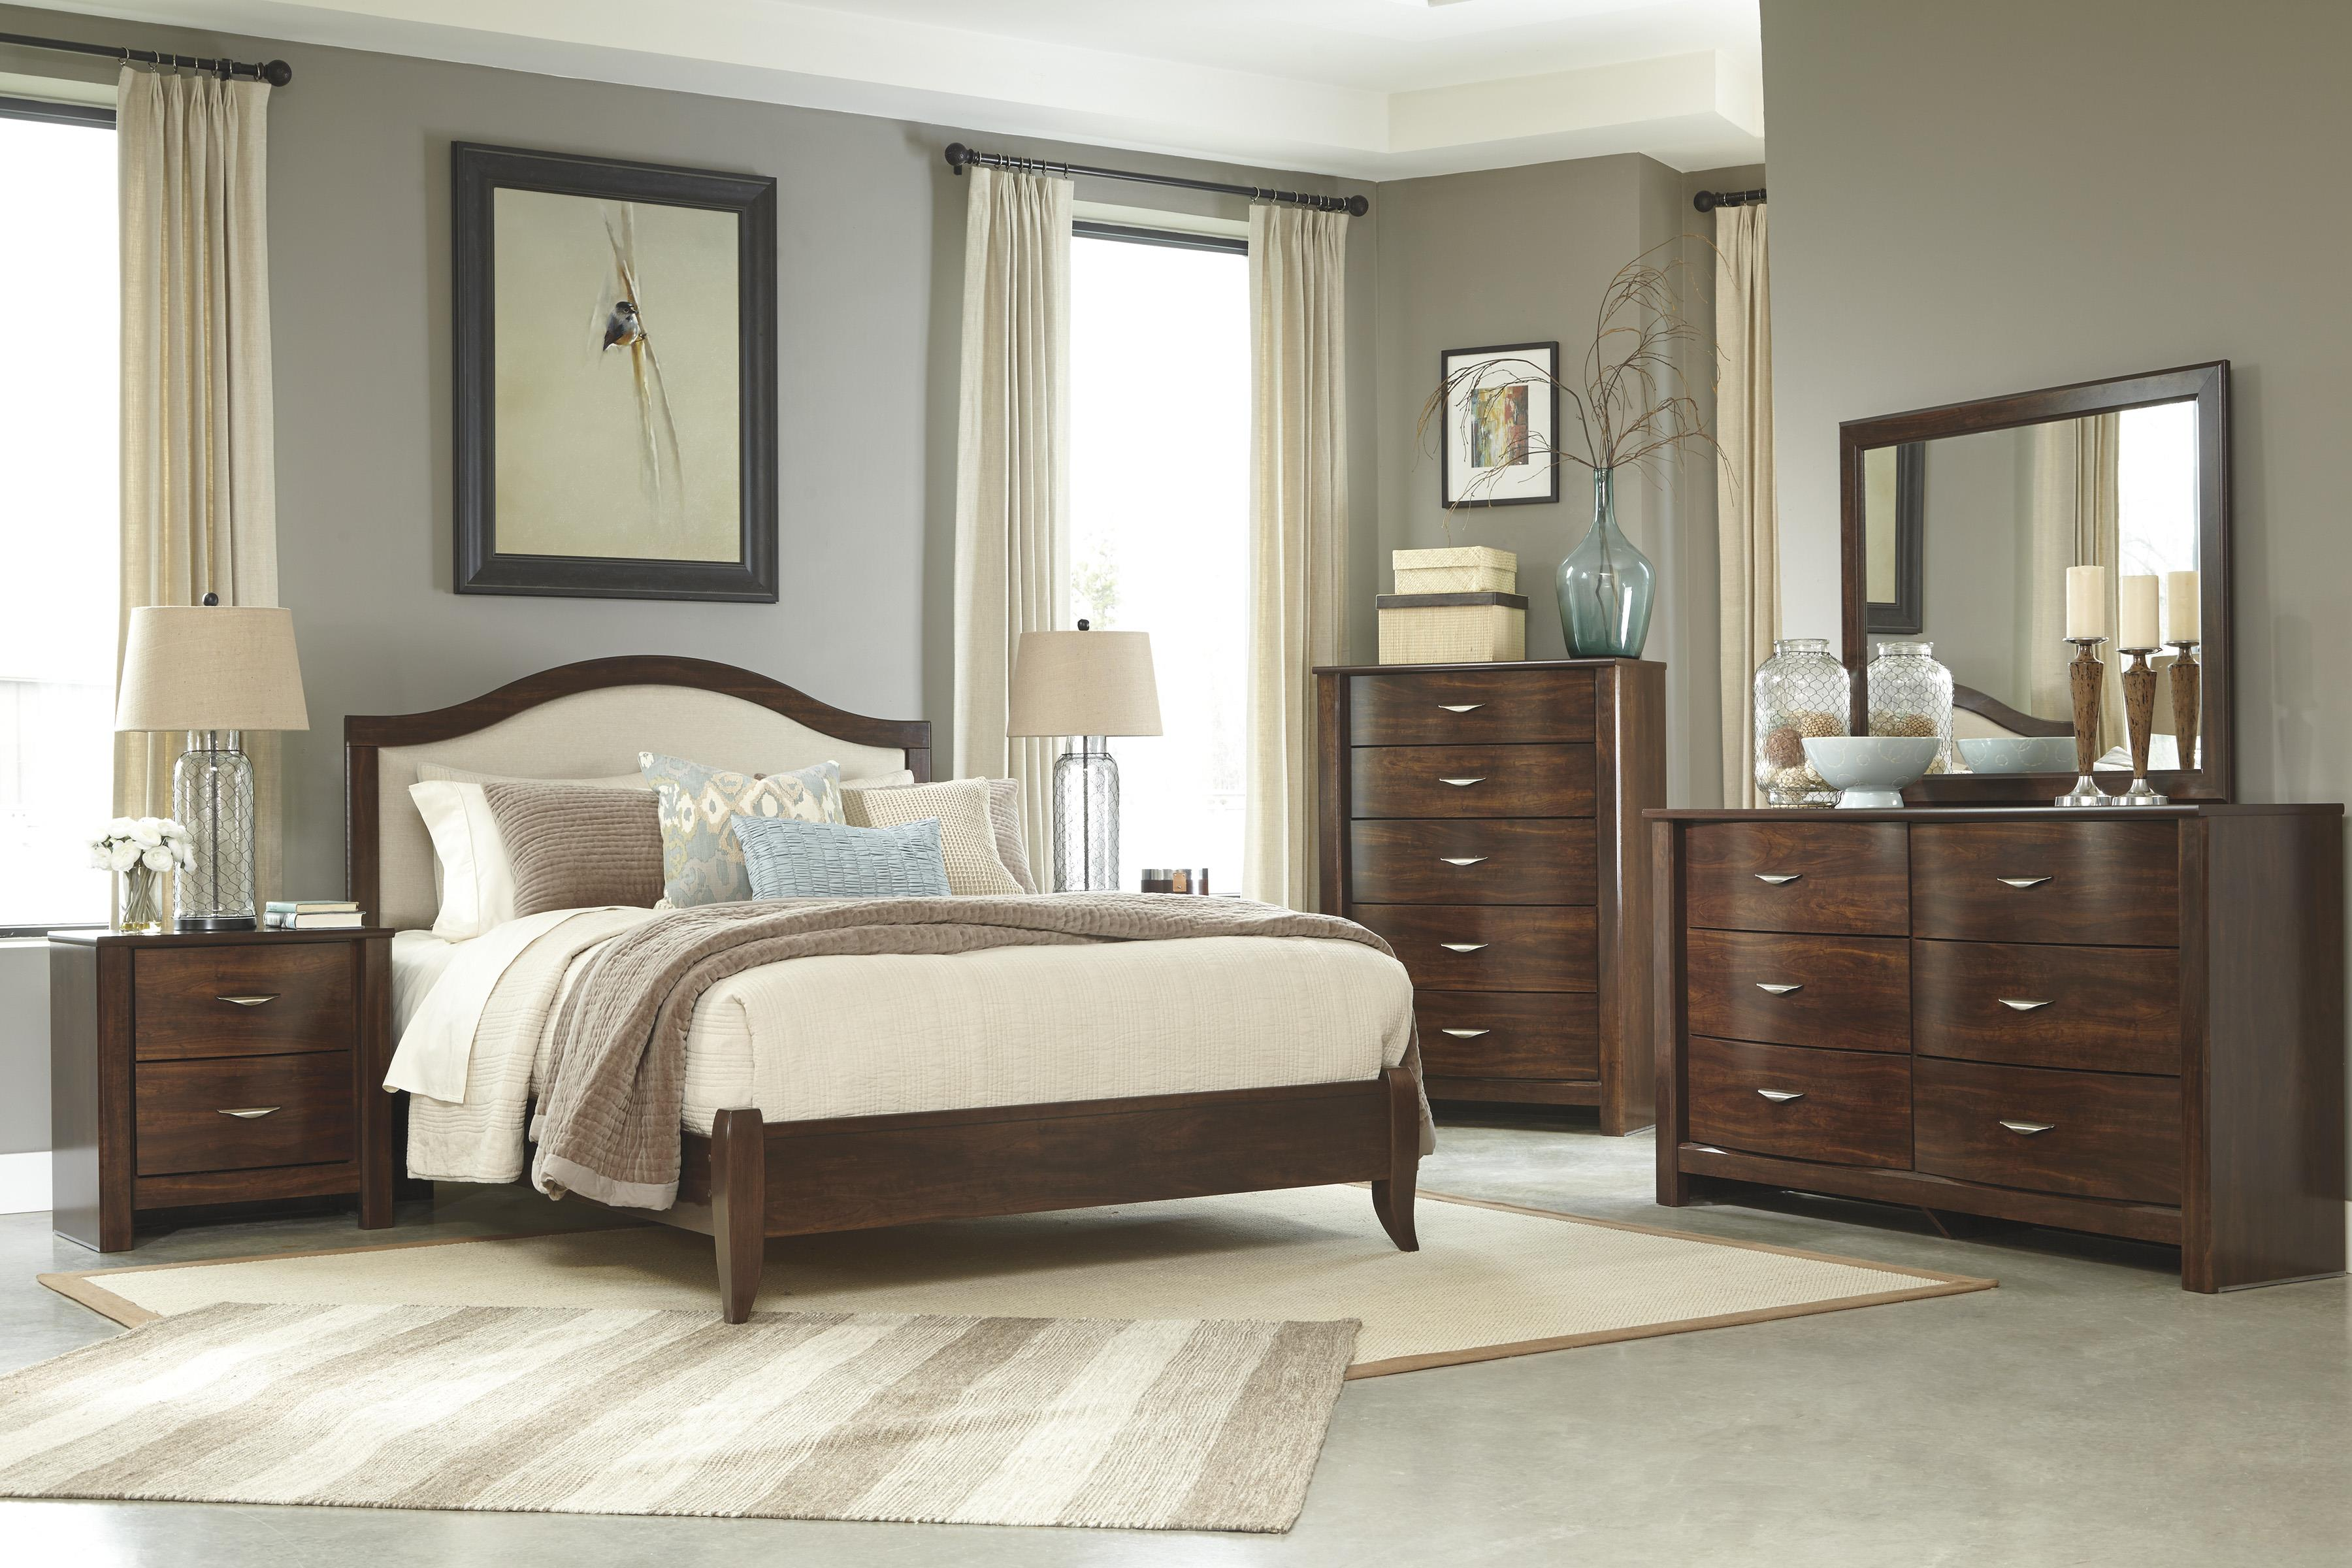 Signature Design by Ashley Corraya Queen Bedroom Group - Item Number: B428 Q Bedroom Group 4